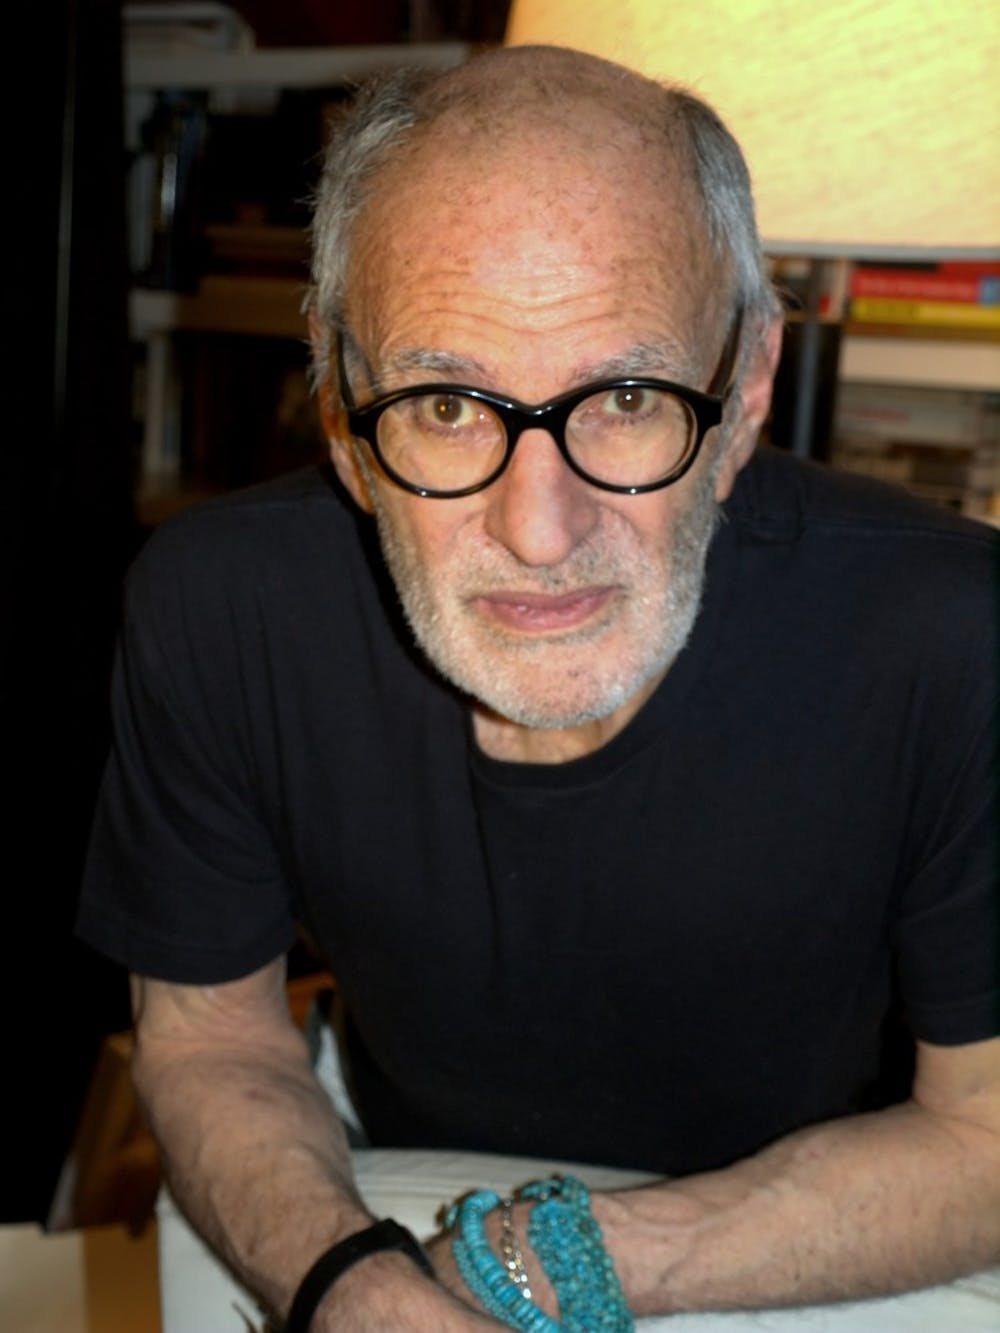 <p>Activist, Oscar-nominated screenwriter, and author <strong>Larry Kramer</strong> spoke at the Hall of Flags on Thursday at an event hosted by QPenn. </p>